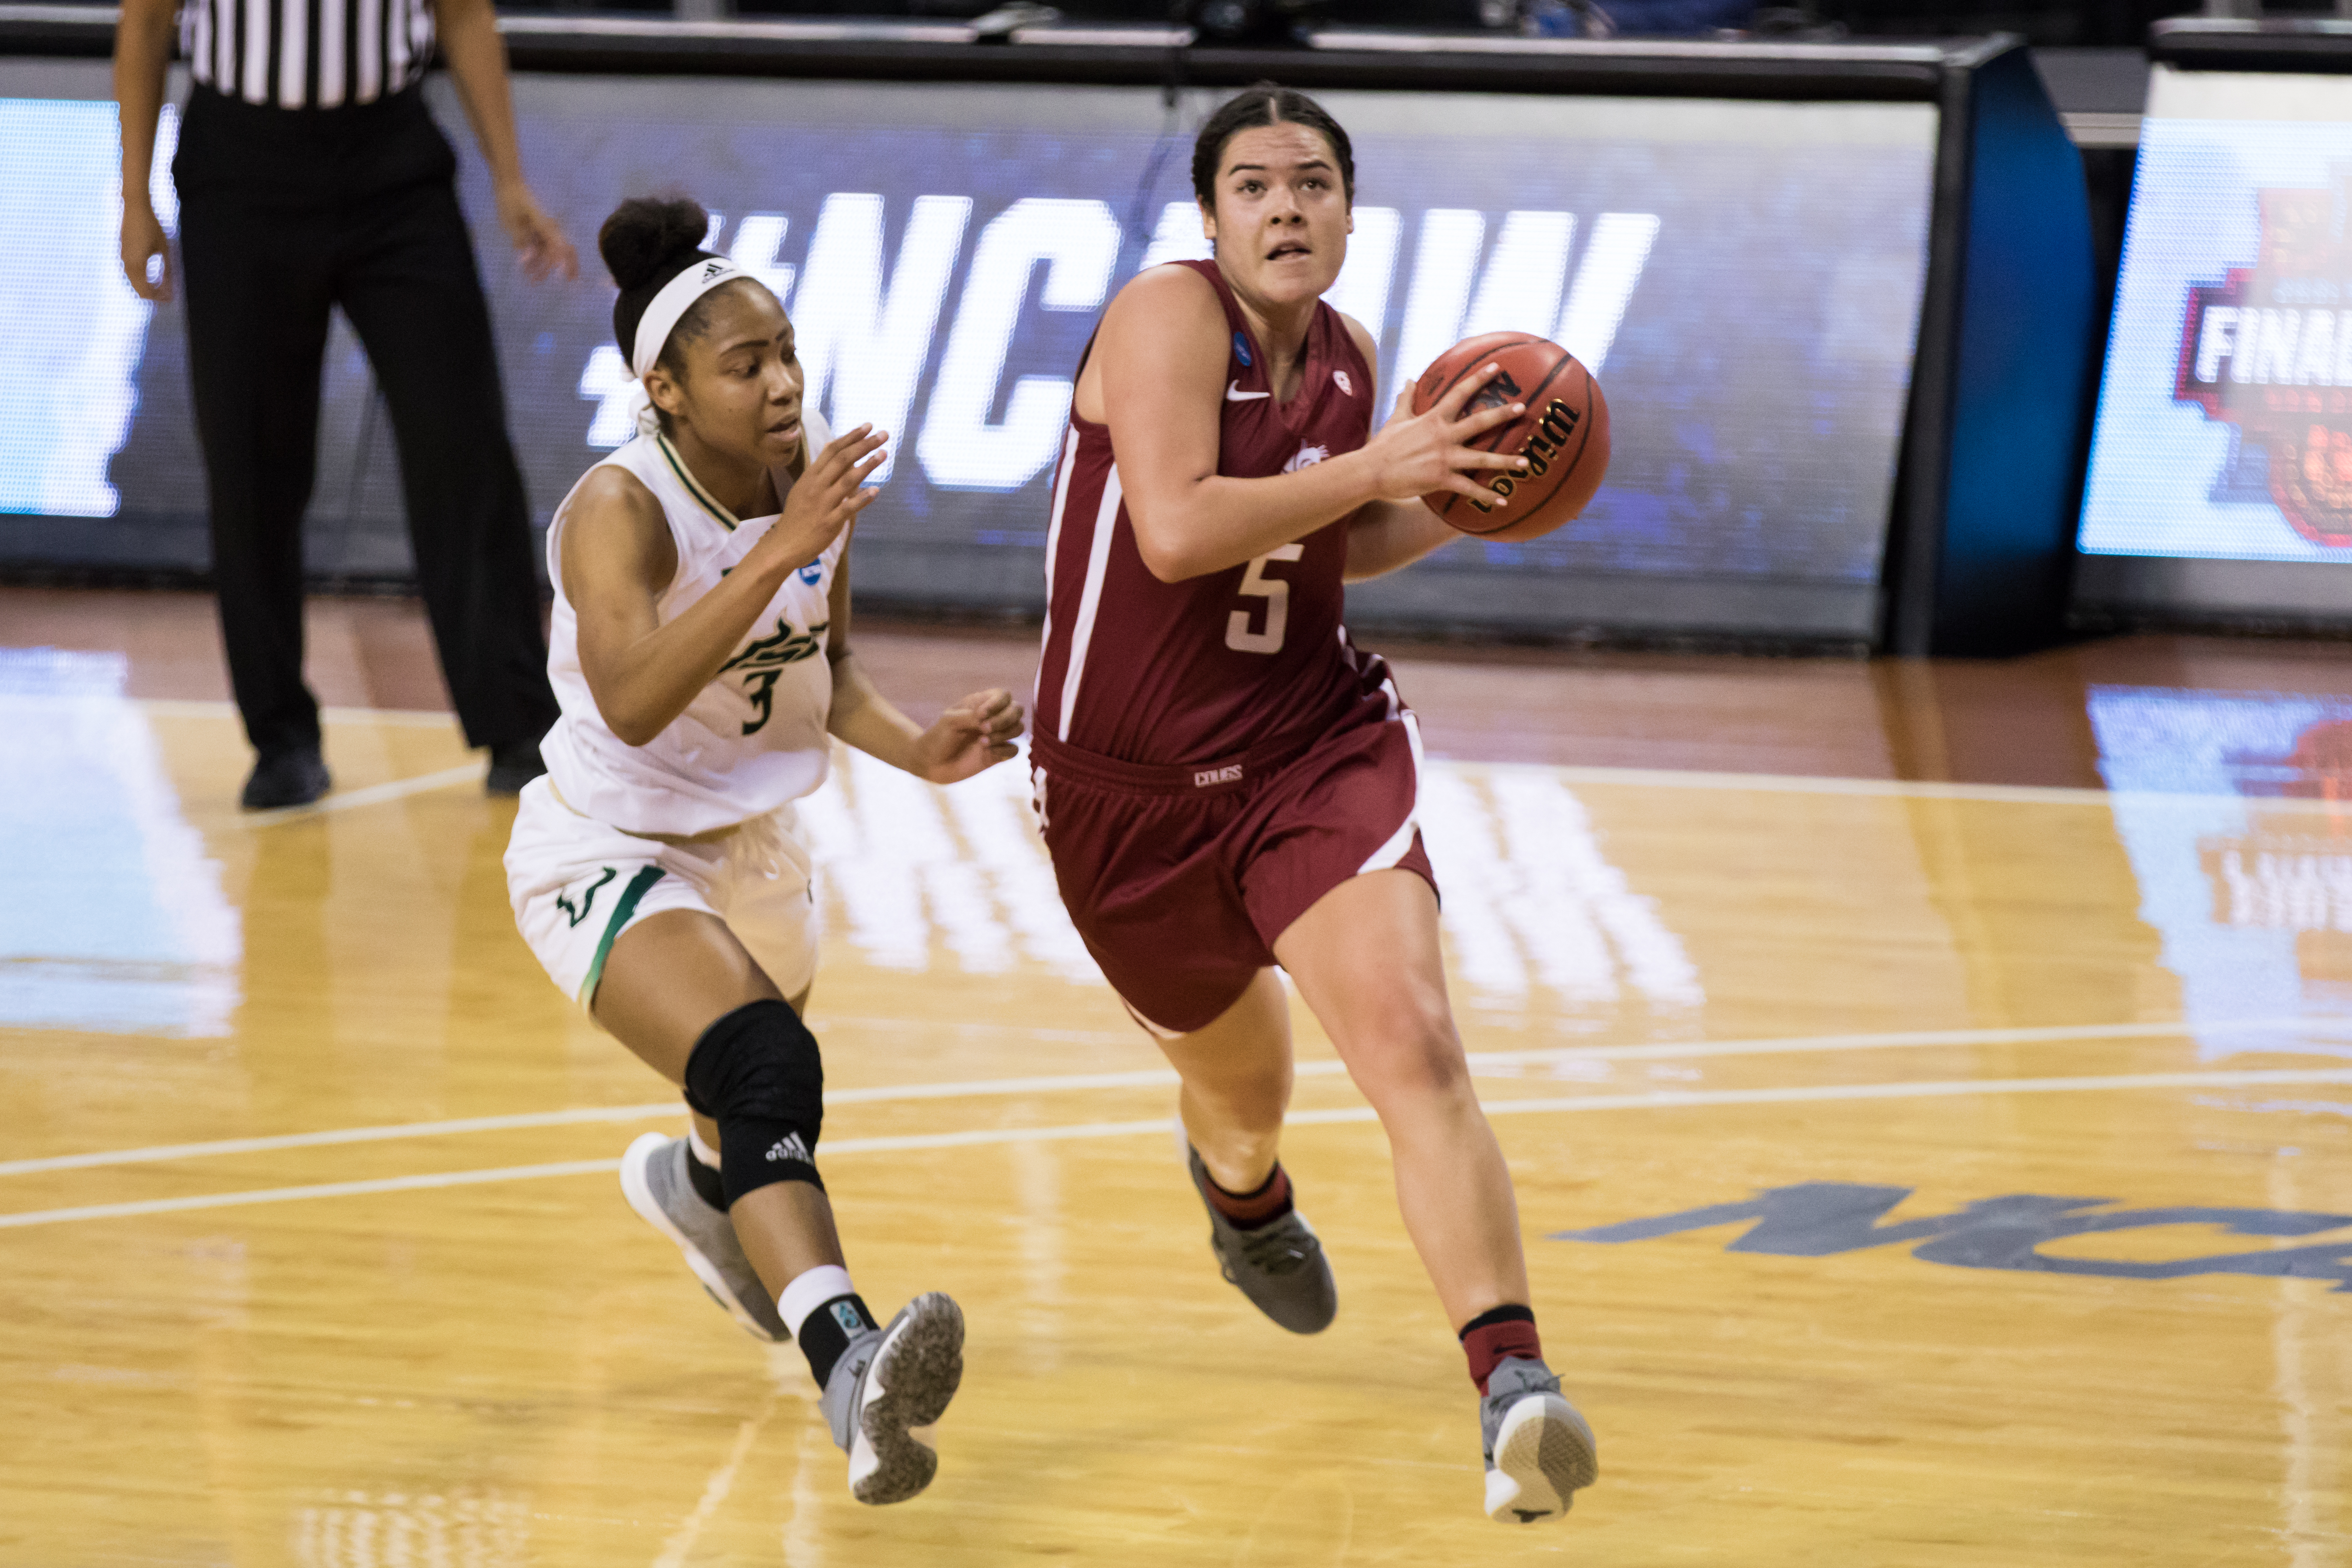 AUSTIN, TX - MARCH 21: Washington State guard Charlisse Leger-Walker (5) drives for a layup during the third quarter of the Women's NCAA Tournament First Round matchup between the USF Bulls and the Washington State Cougars on March 21, 2021, at Frank Erwin Center in Austin, TX.